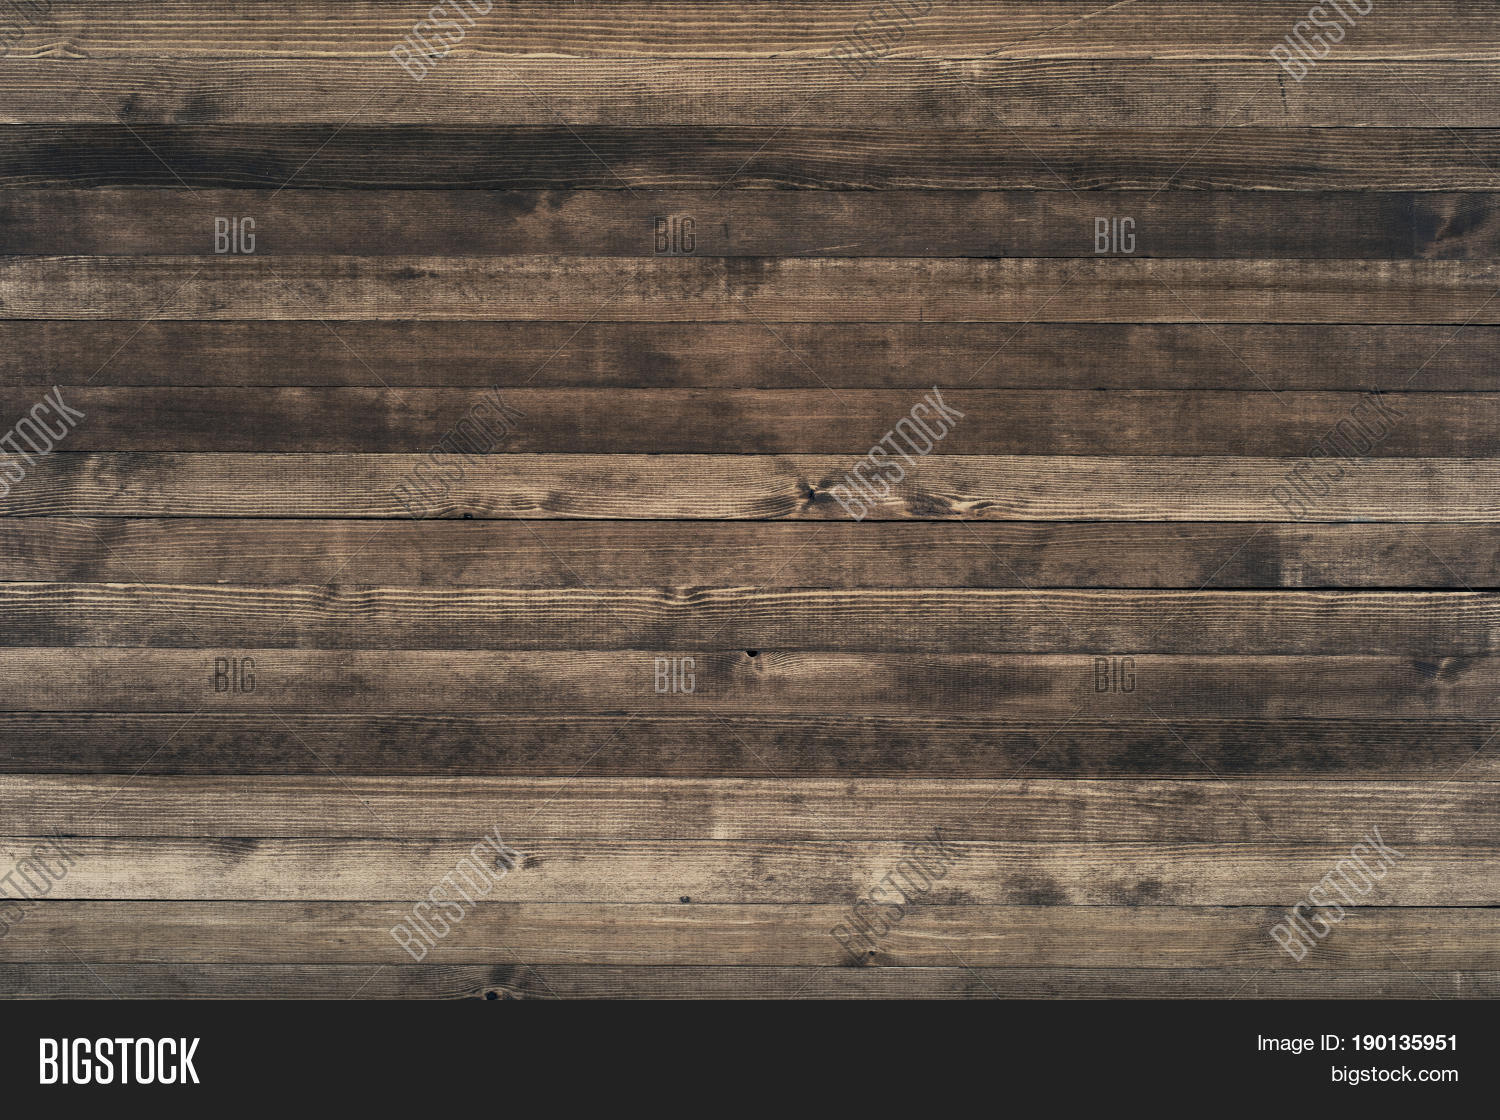 Wood table top texture - Large Dinner Empty Wood Table Top Wood Table Texture Background Plank Board Of Wood